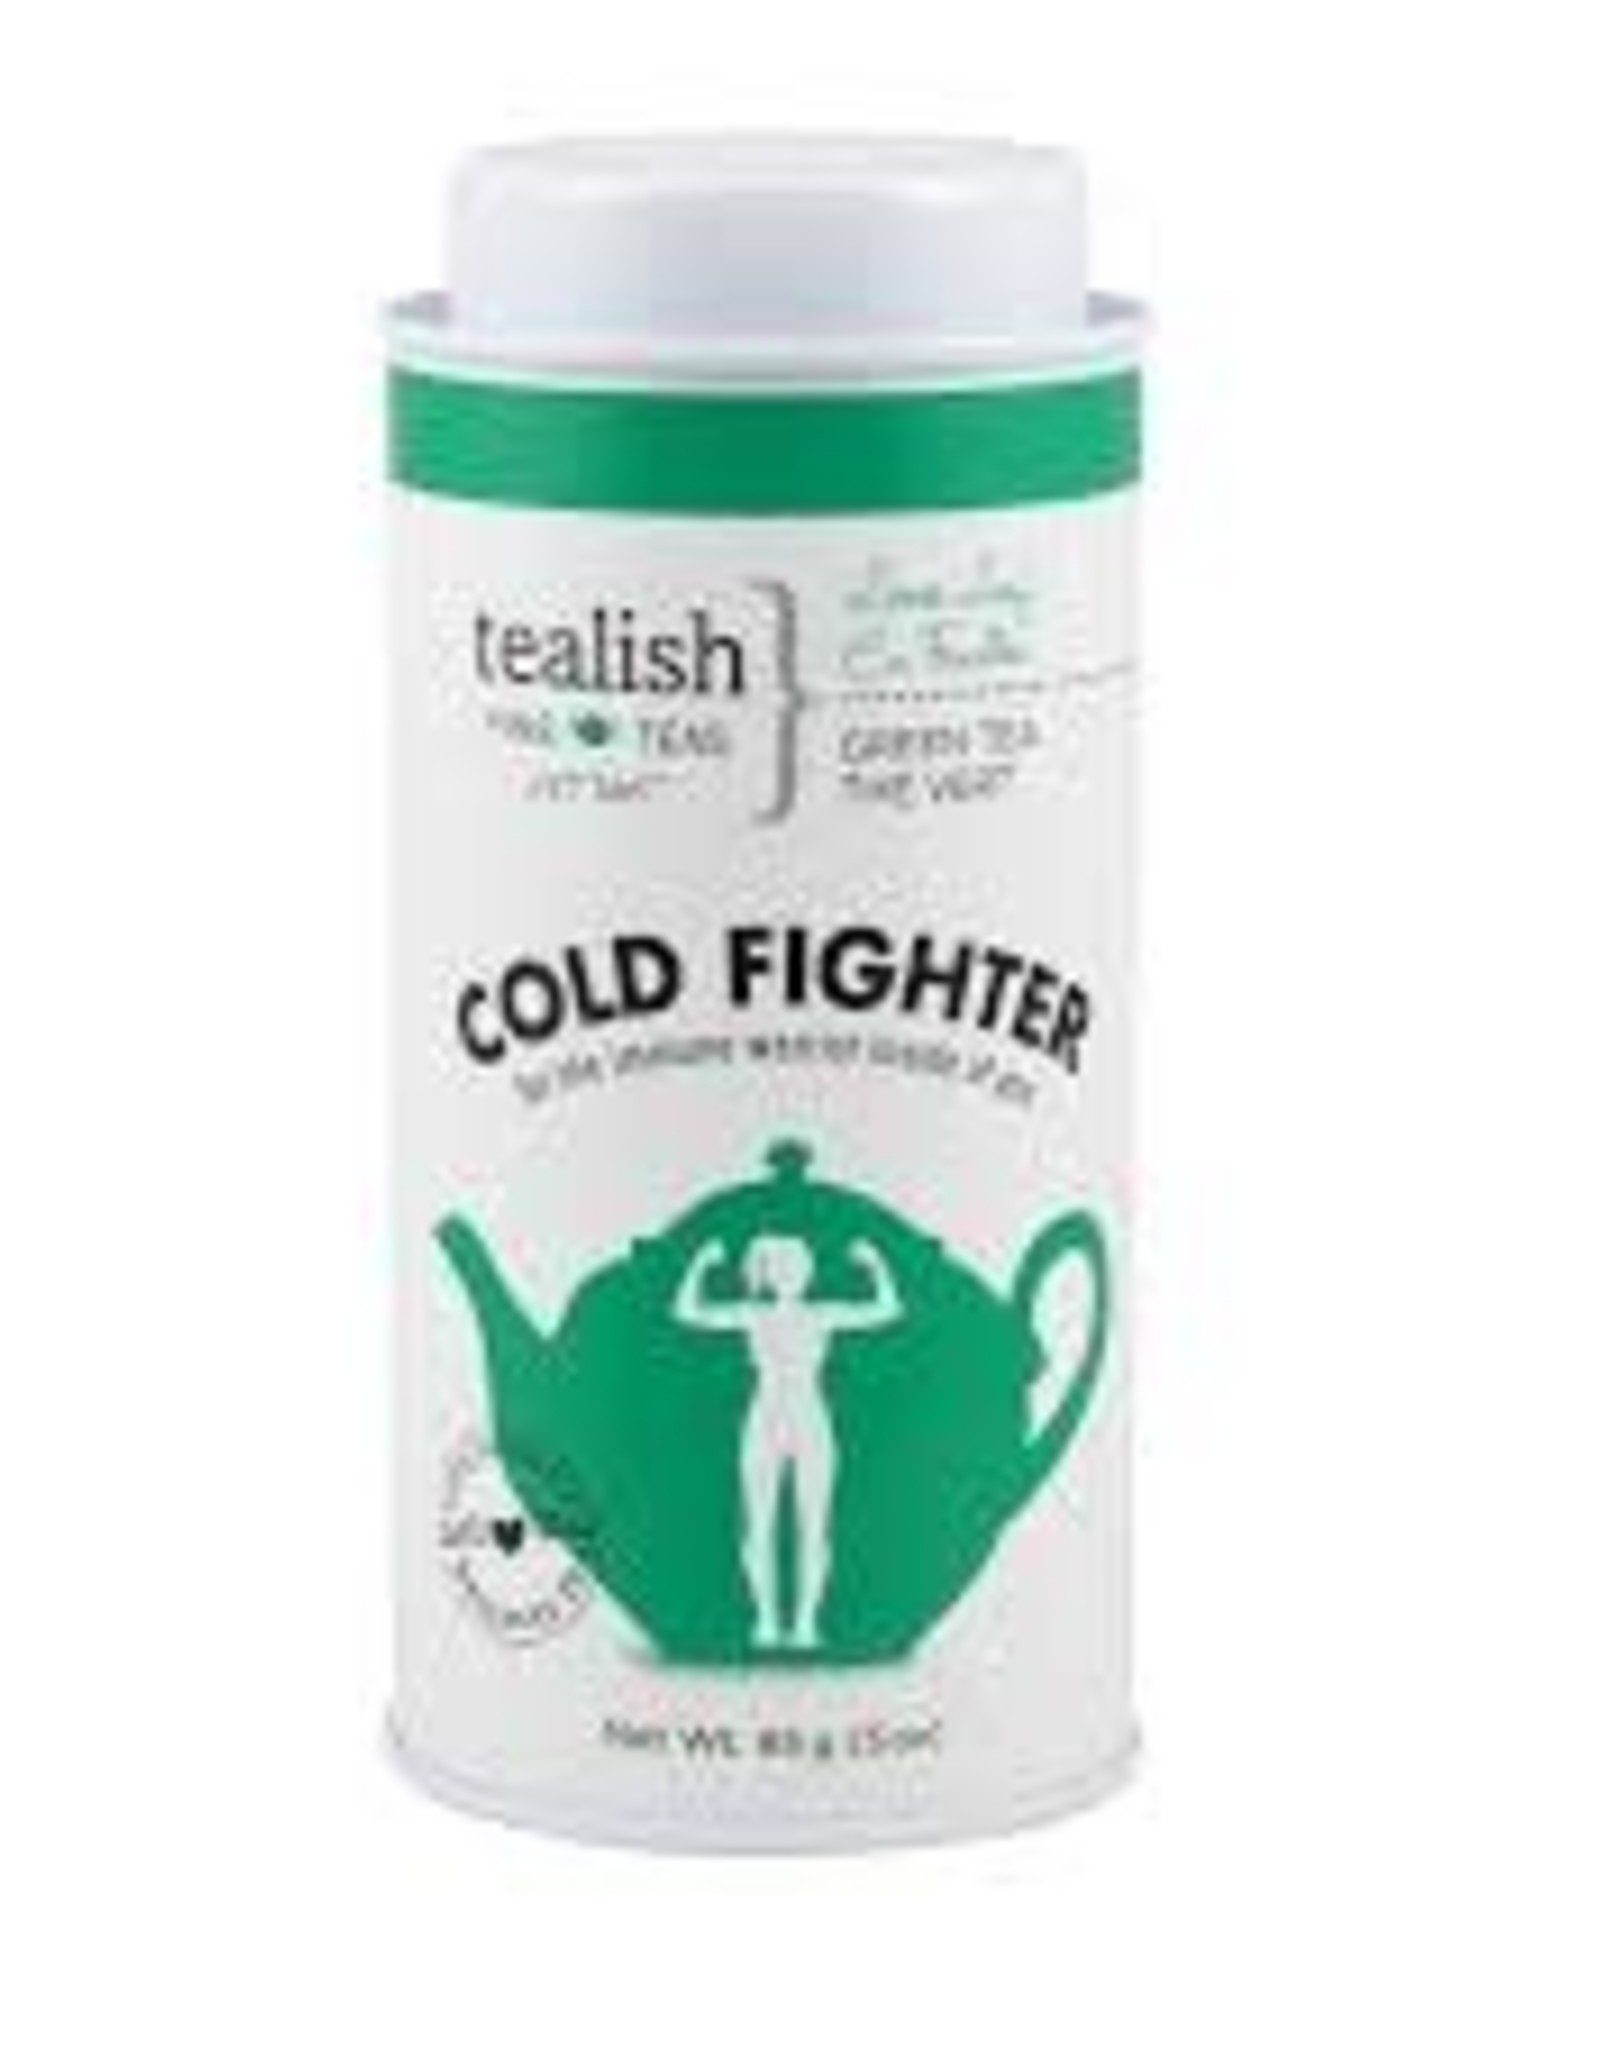 Tealish Cold Fighter - Green Tea